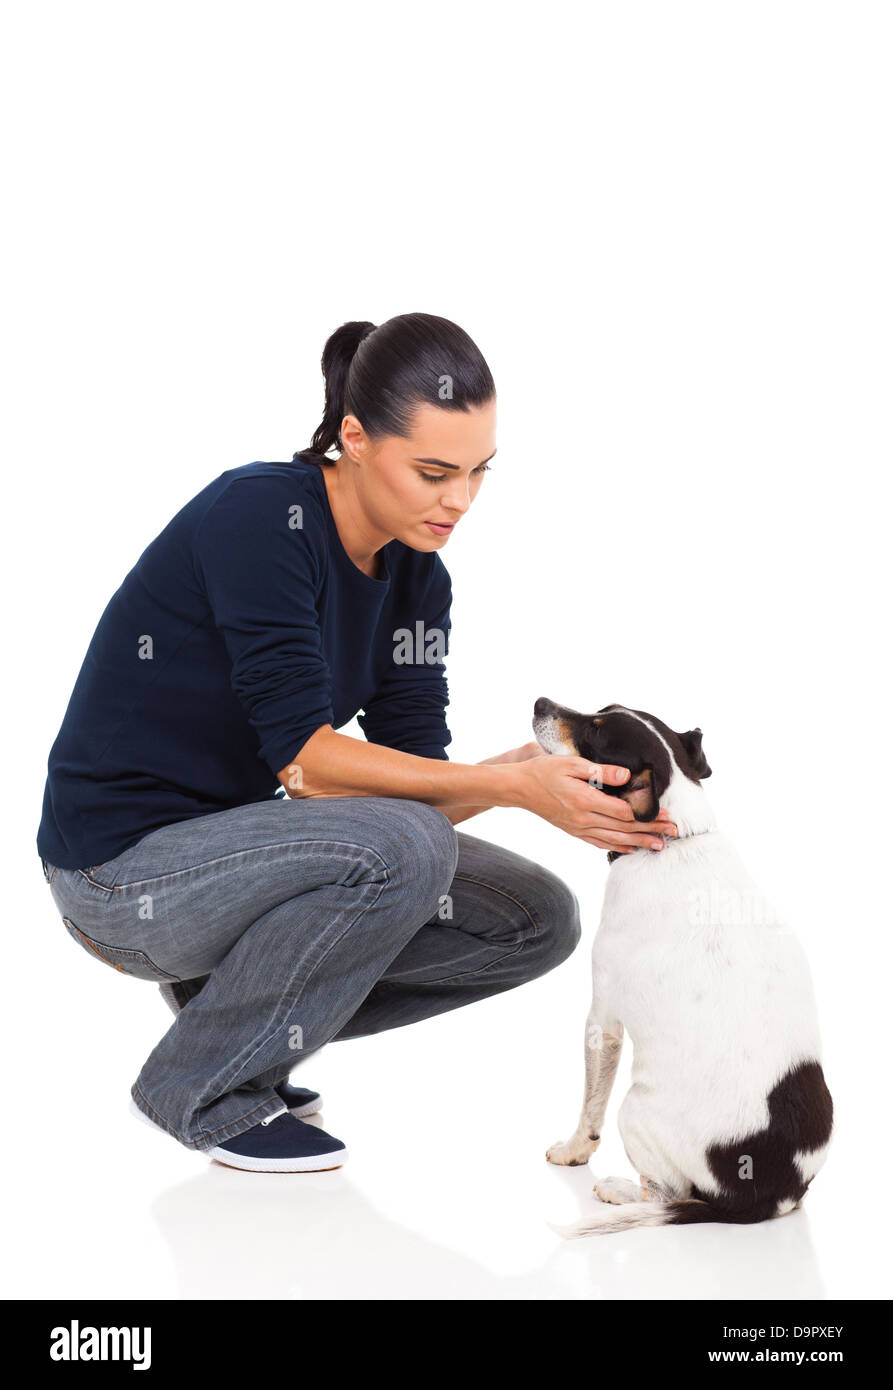 pretty young woman playing with her pet dog on white background - Stock Image